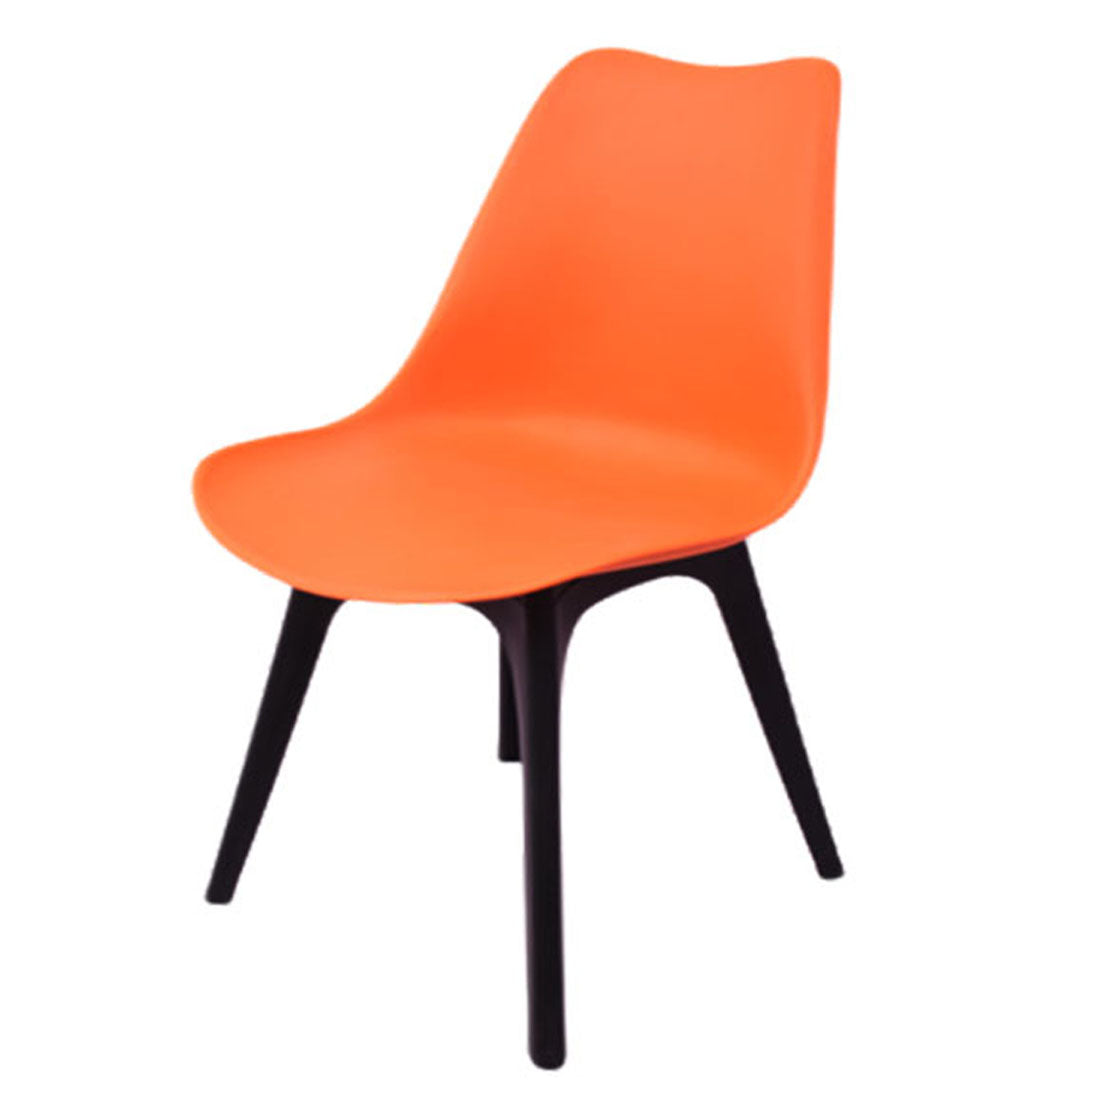 Dining Chair Wood Base Plastic Cafeteria Chair (Orange)